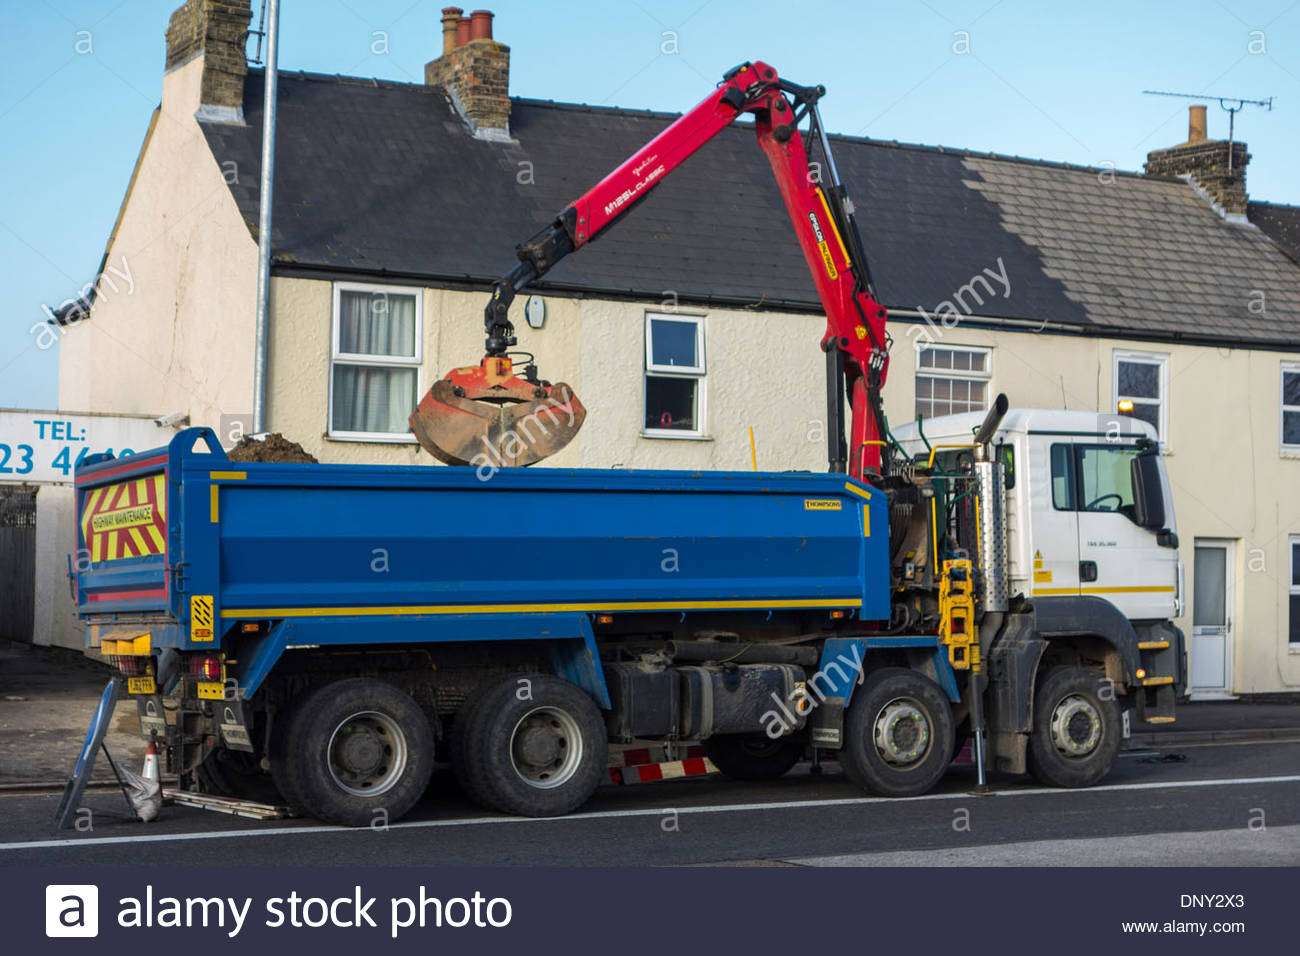 MAN Tipper Grab Truck in use at side of main road - Stock Image